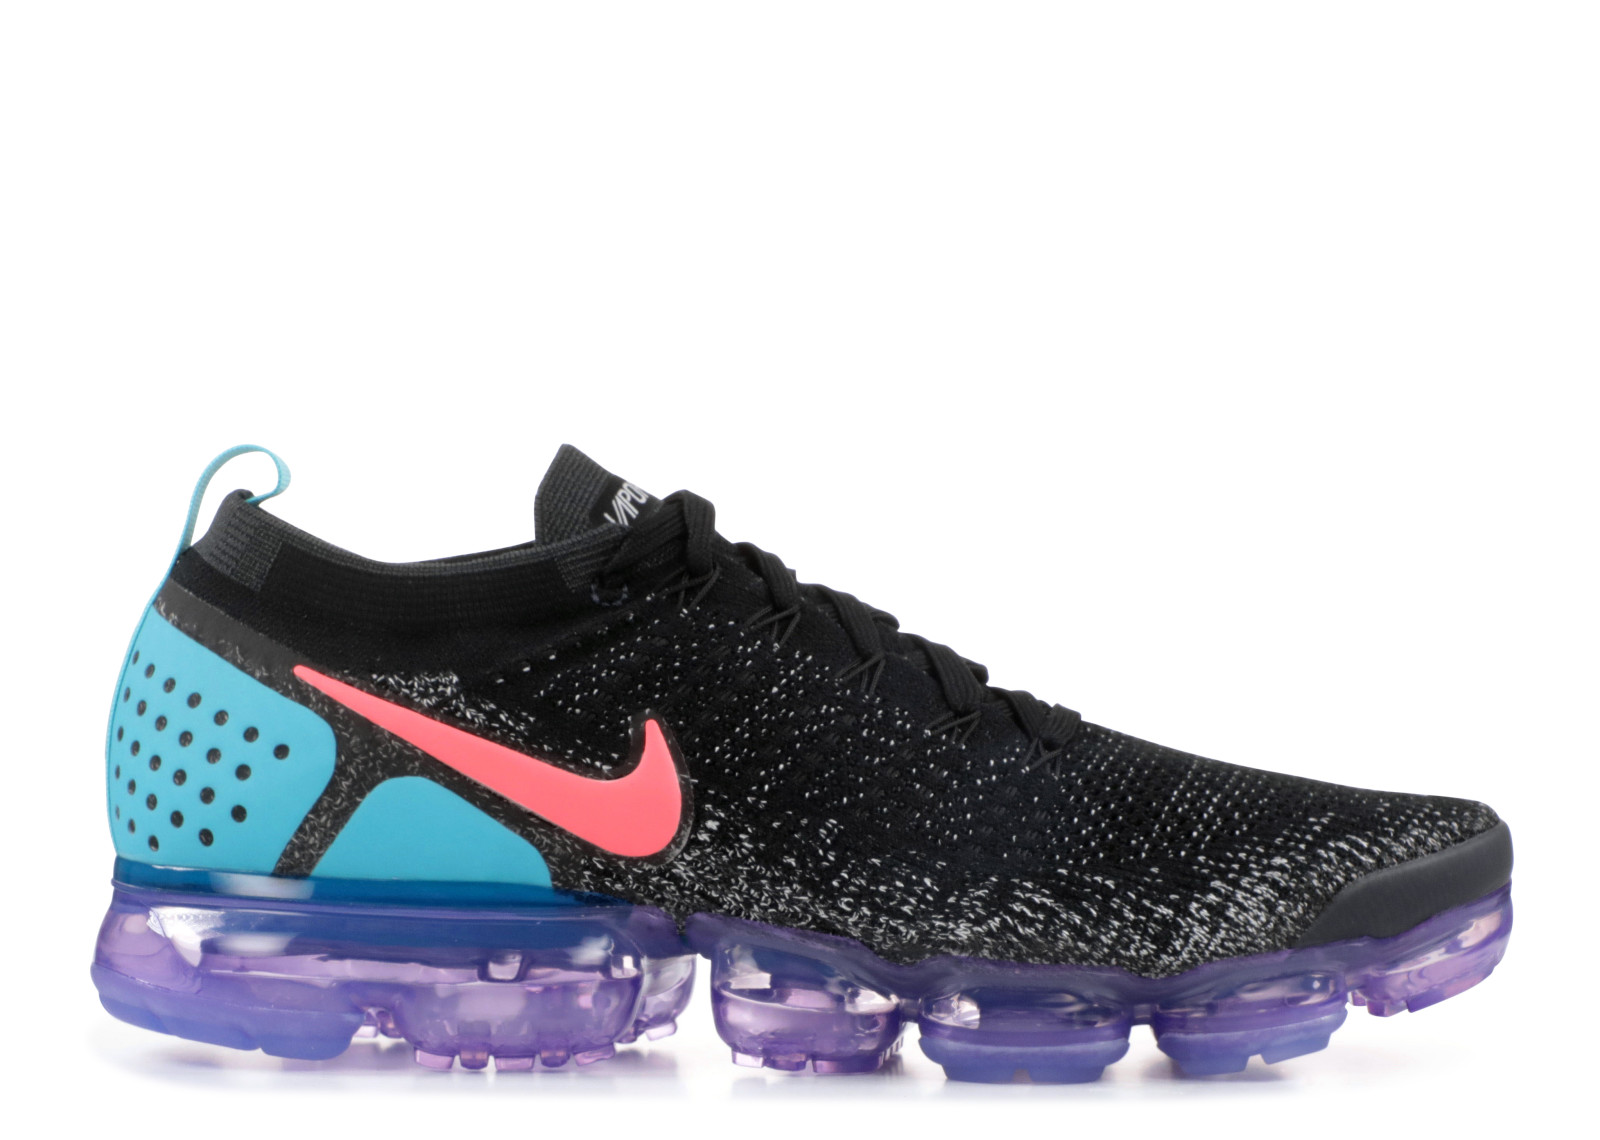 93b385740ef66 Nike Air VaporMax 2.0 Black Hot Punch - 0